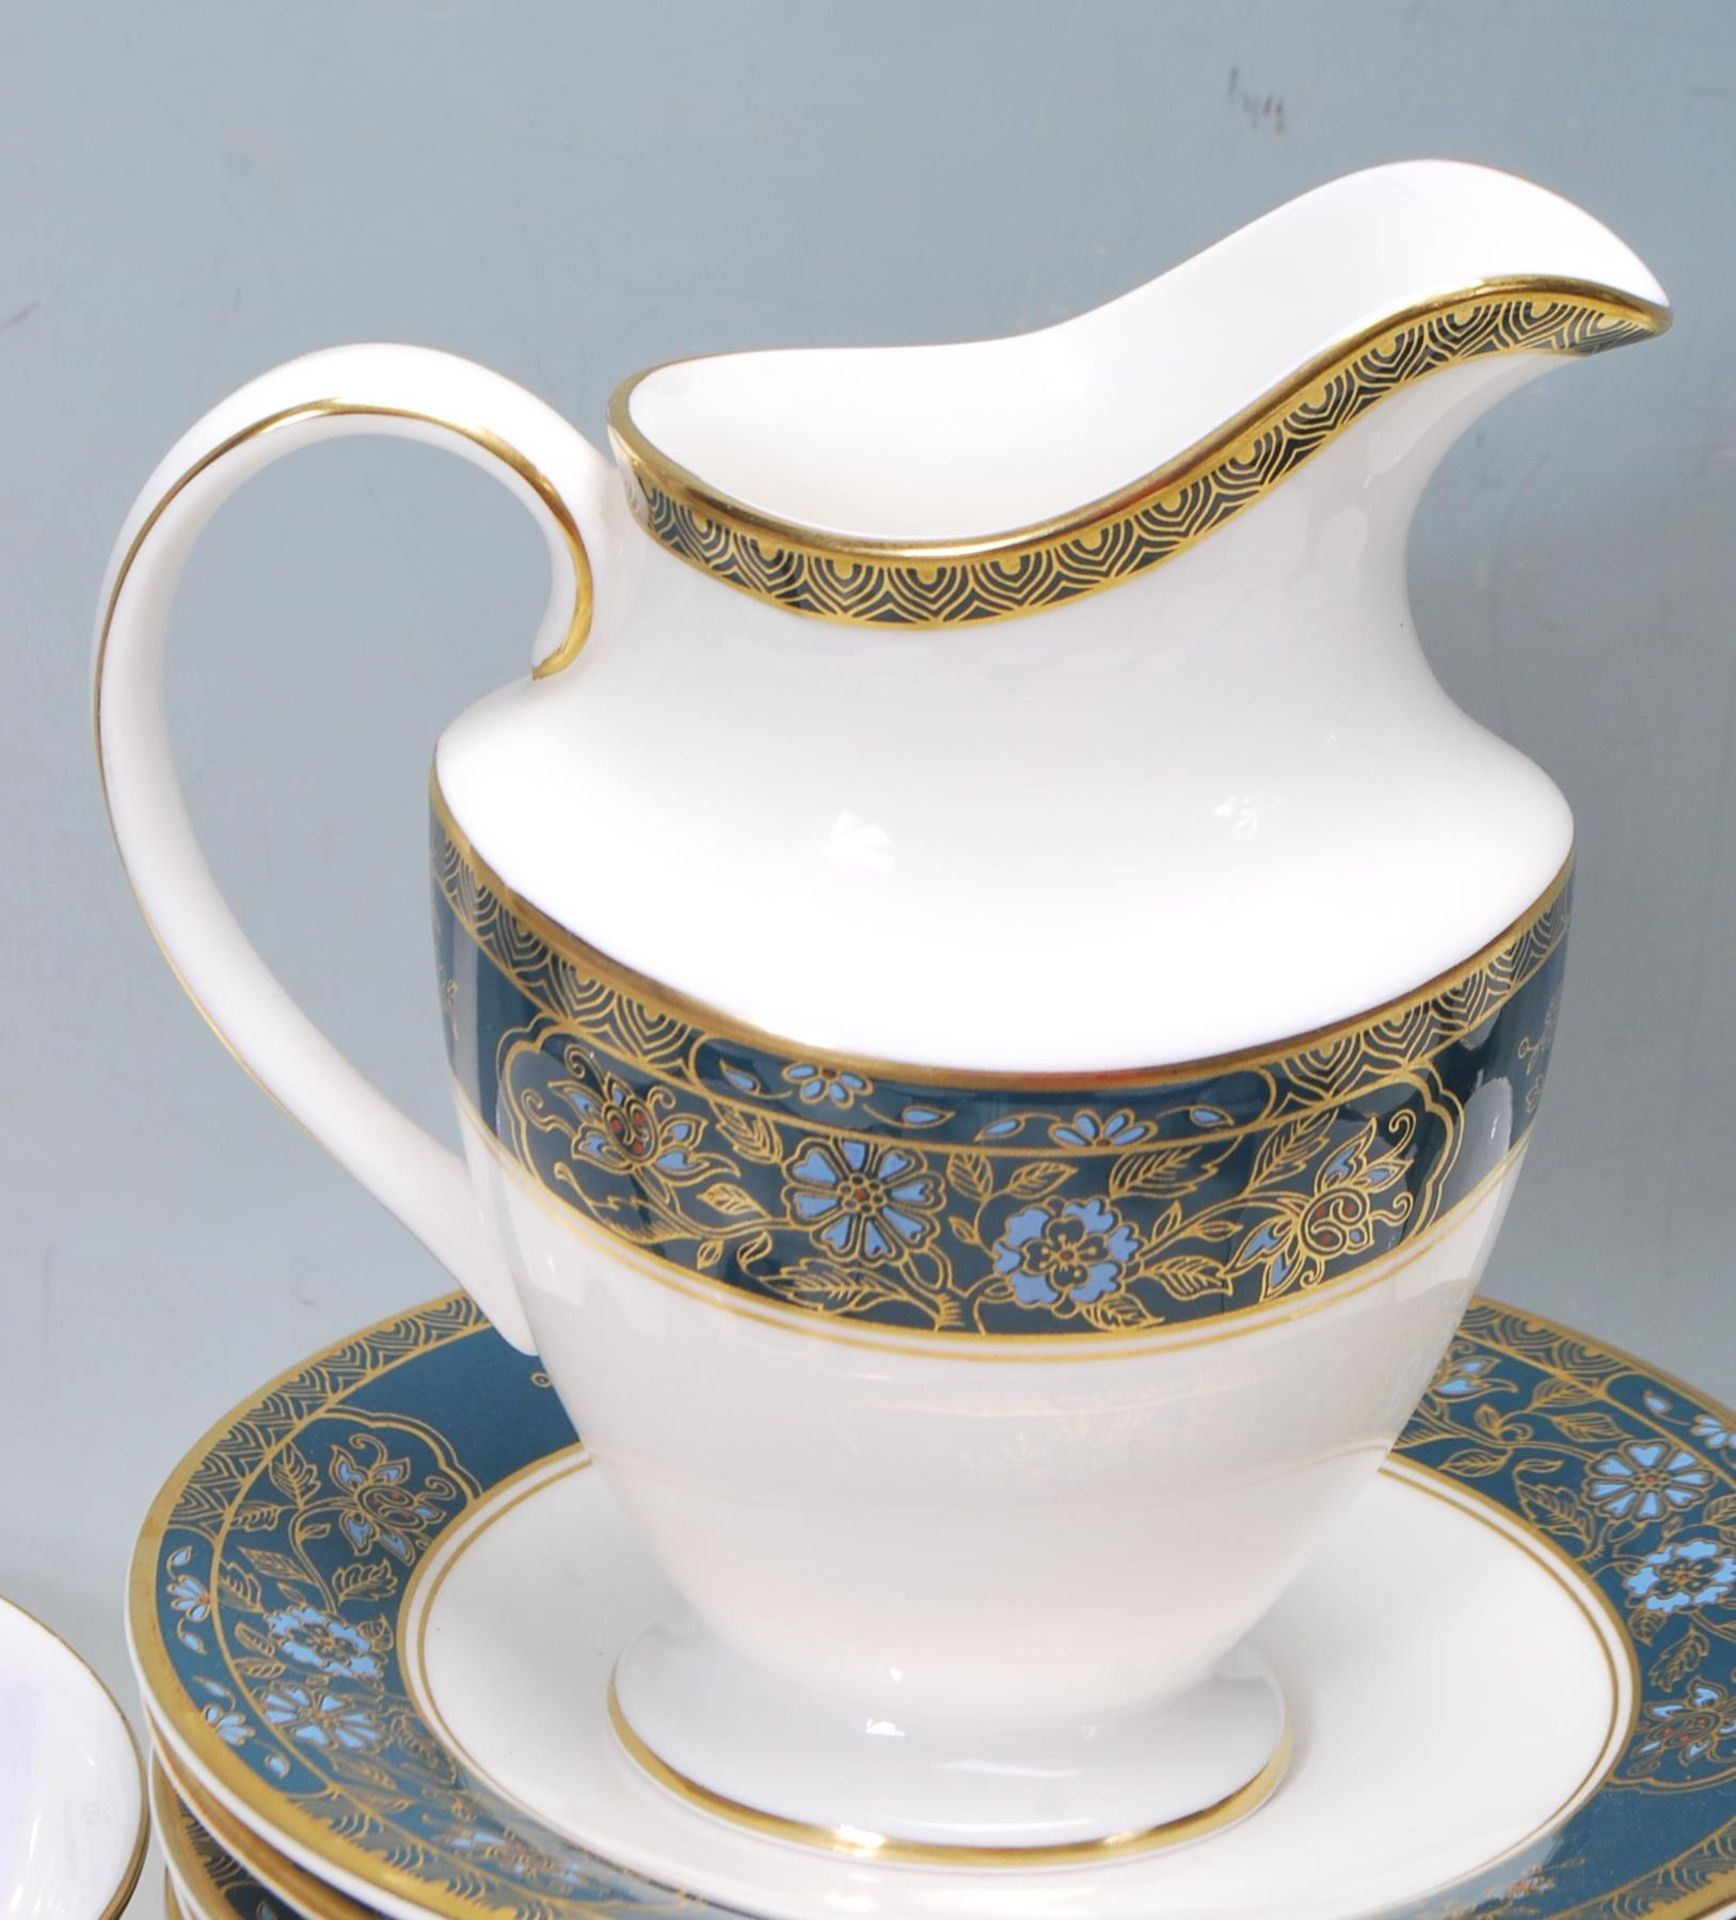 COLLECTION OF LATE 20TH CENTORUY ROYAL DOULTON FINE BONE CHINA DINNER SERVICE - Image 6 of 8